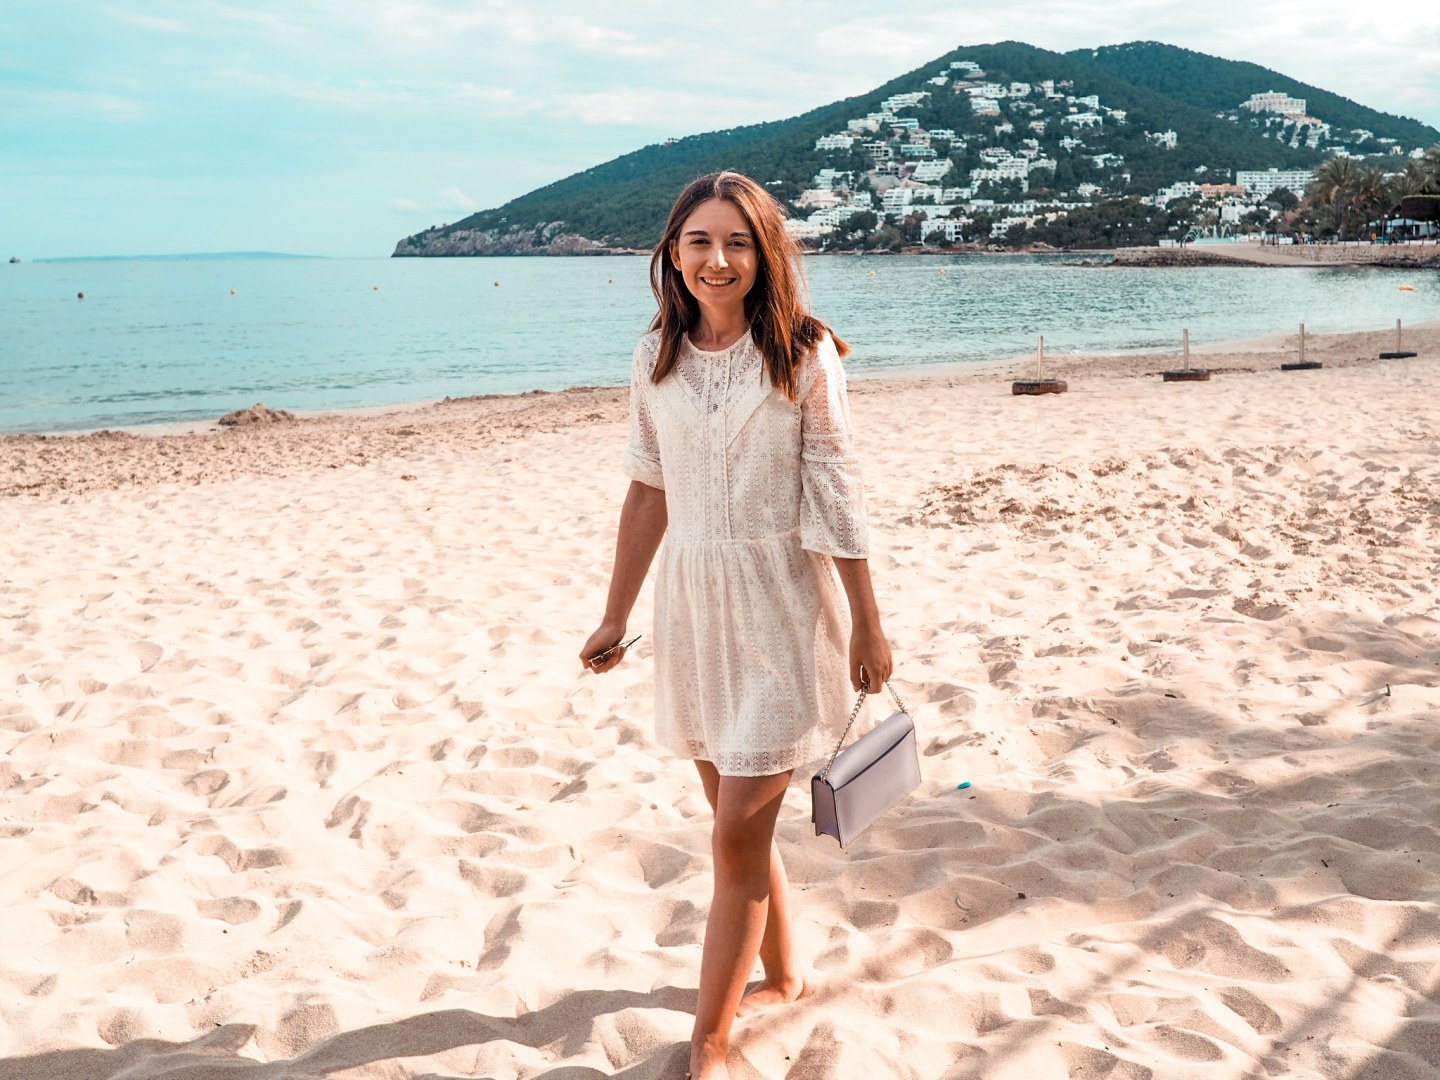 Working on understanding my body and my needs   Hollie in Wanderlust   Lifestyle Blogger